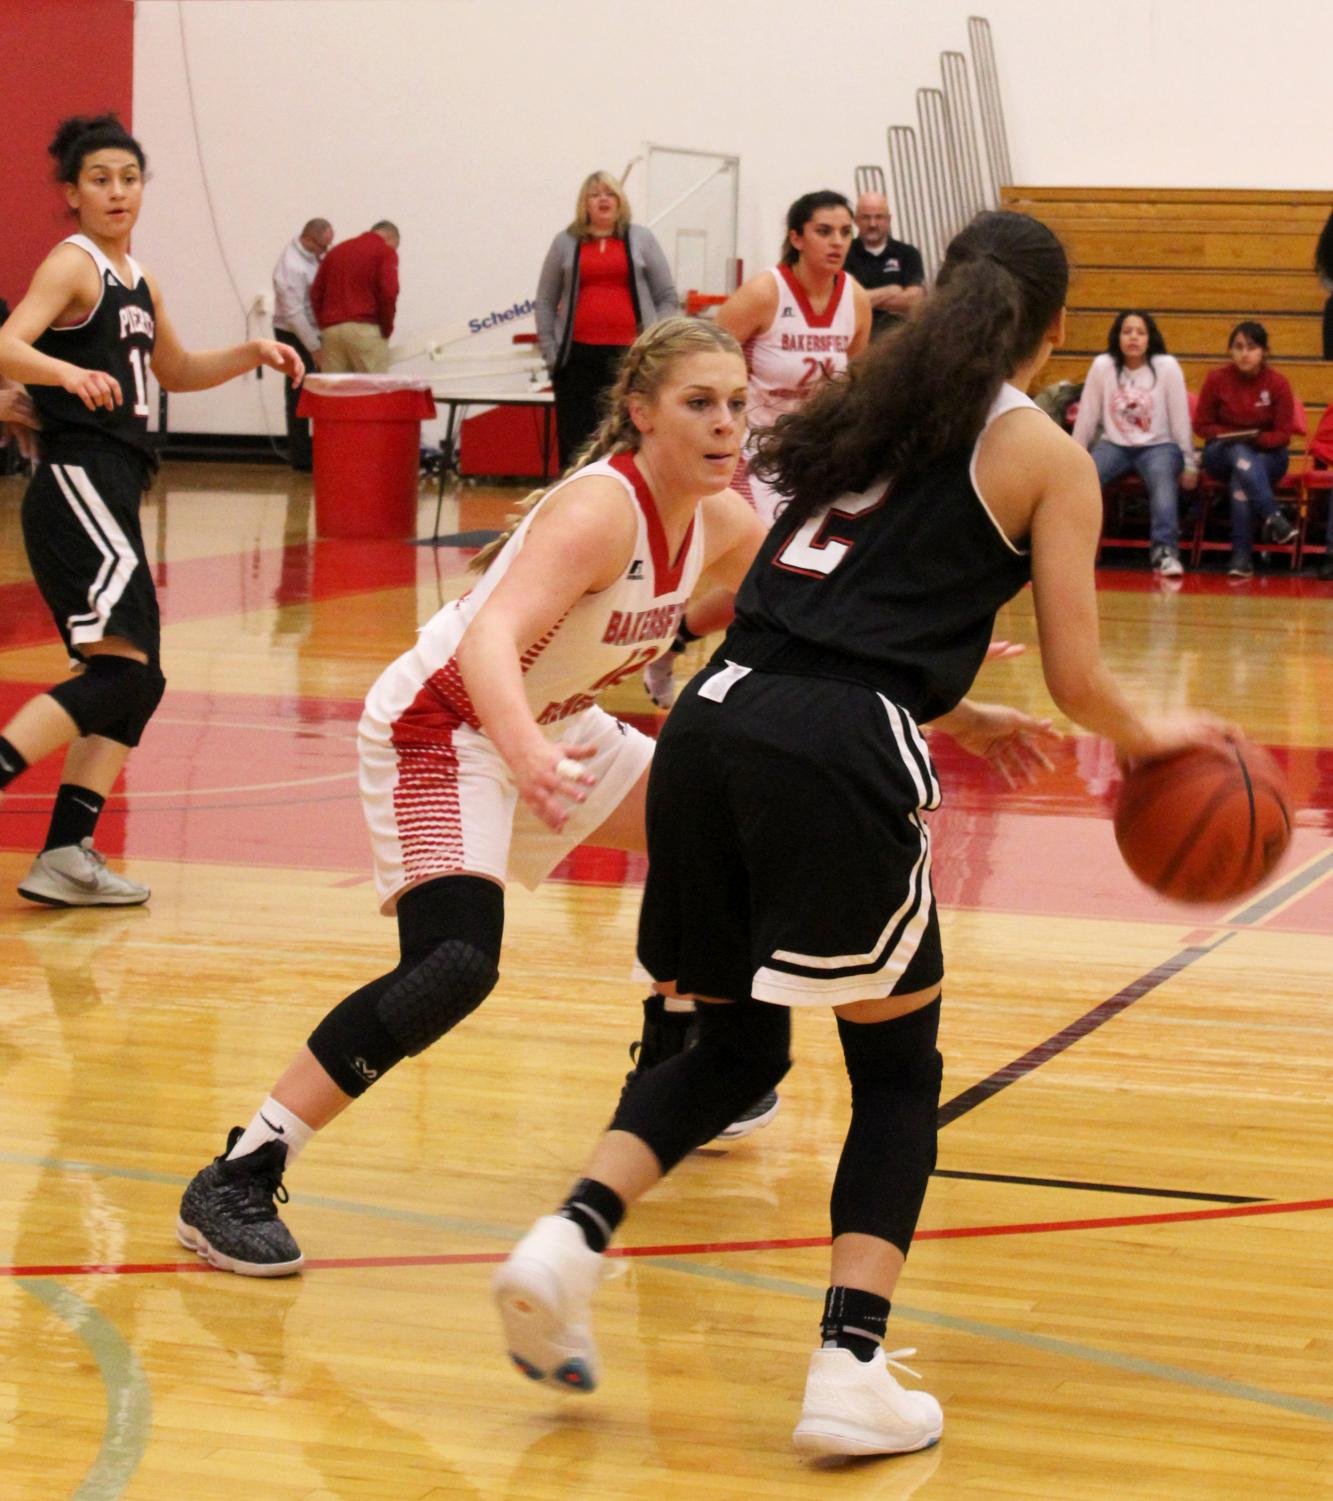 Angie Kroger, BC Renegade player and guard on the basketball team, facing off against a player from Los Angeles Pierce College